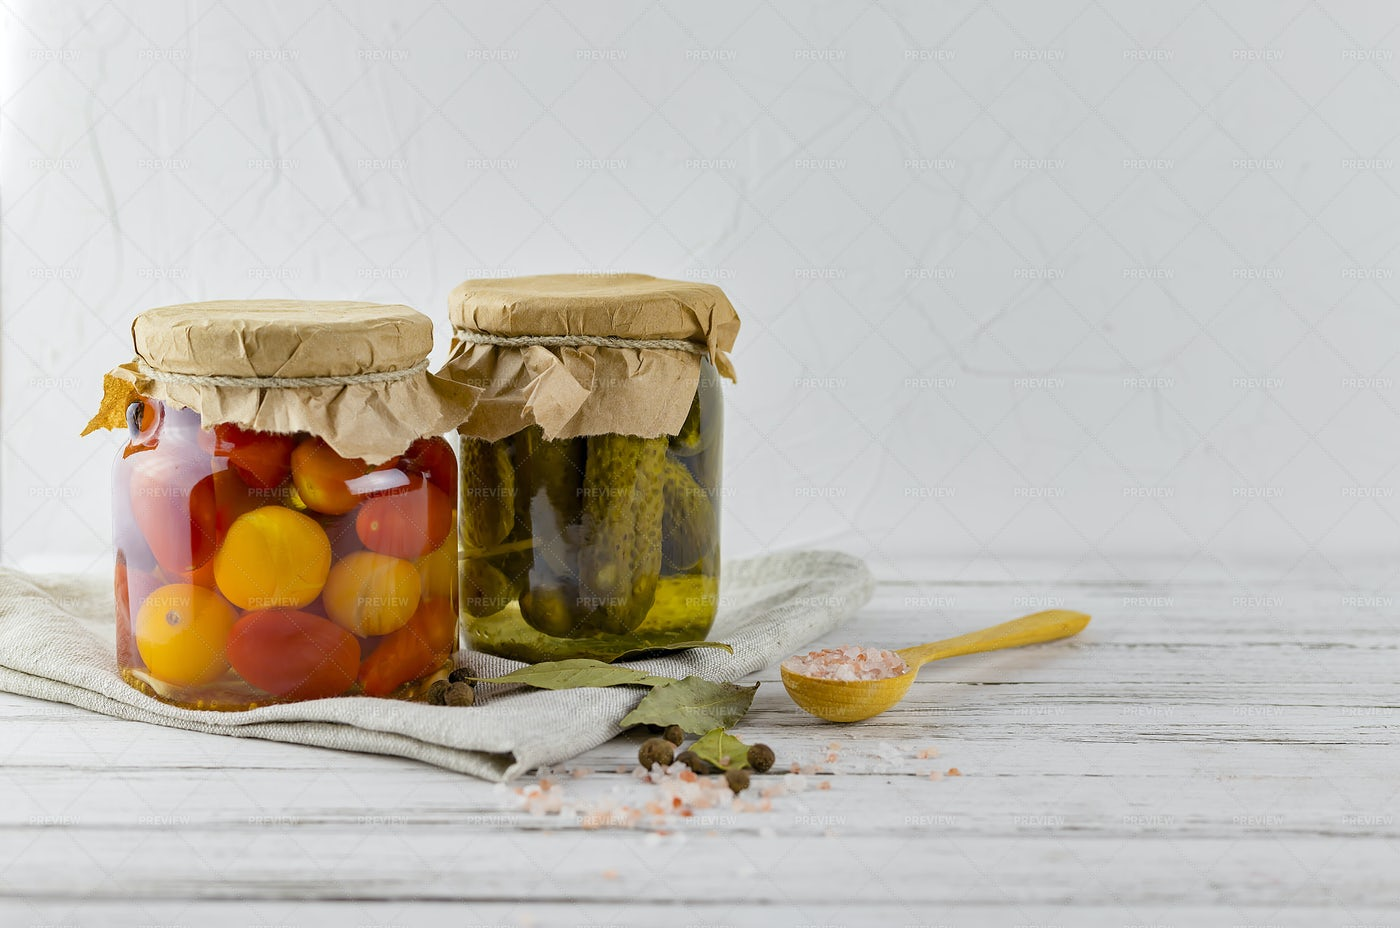 Fermented Cucumbers In Glass Jars: Stock Photos